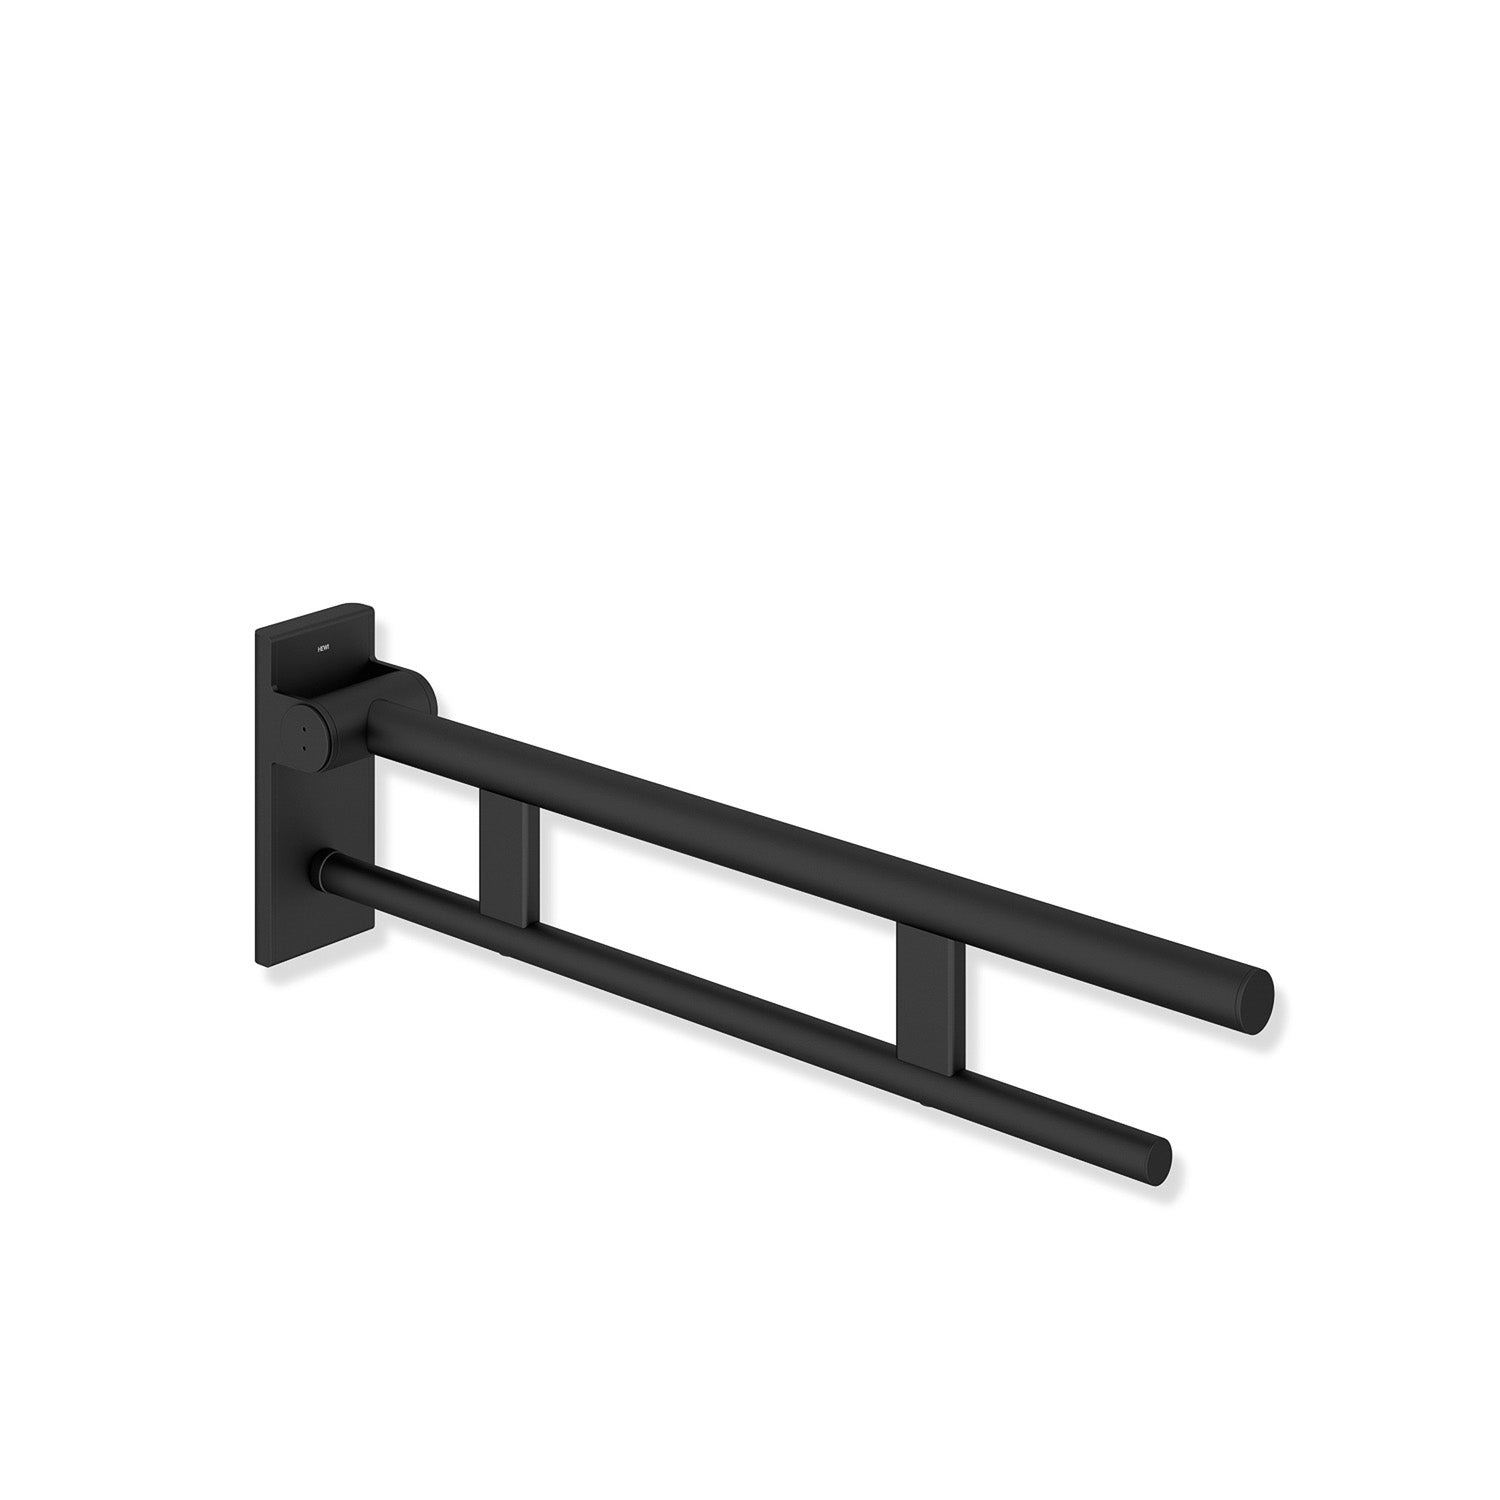 850mm Freestyle Hinged Grab Rail with a matt black finish on a white background